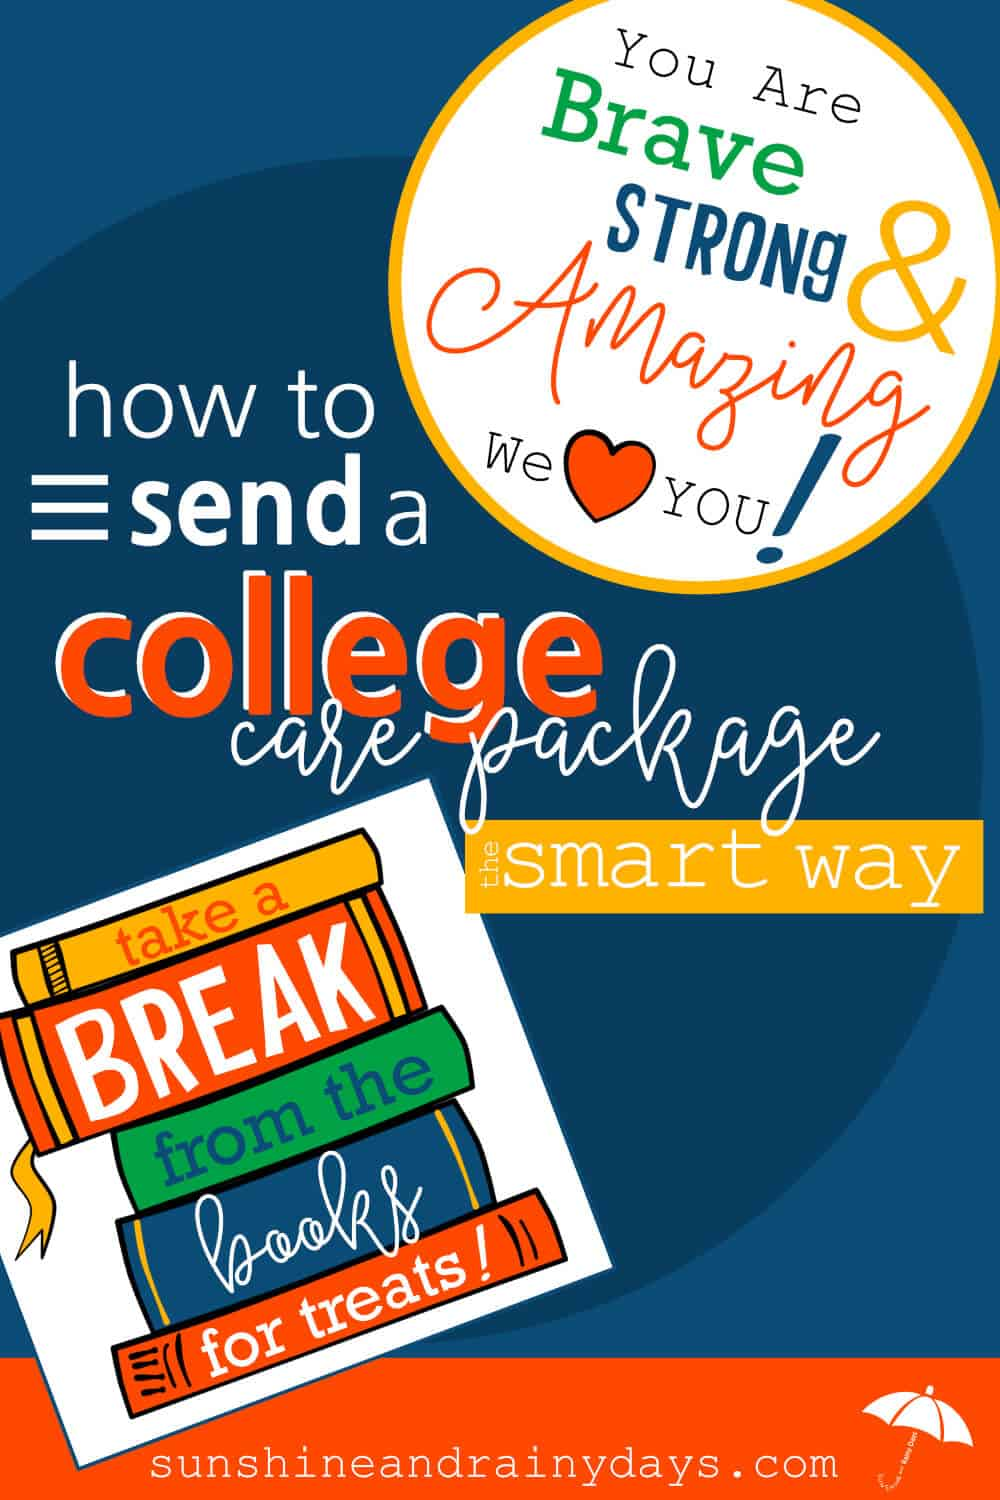 Learn how to create a College Care Package the SMART way with these tips and tricks! College Care Package | College Care Package Ideas | College Care Package For Guys | College Care Package For Girls | College Care Package DIY | College Care Package Printables | #college #printables #SARD